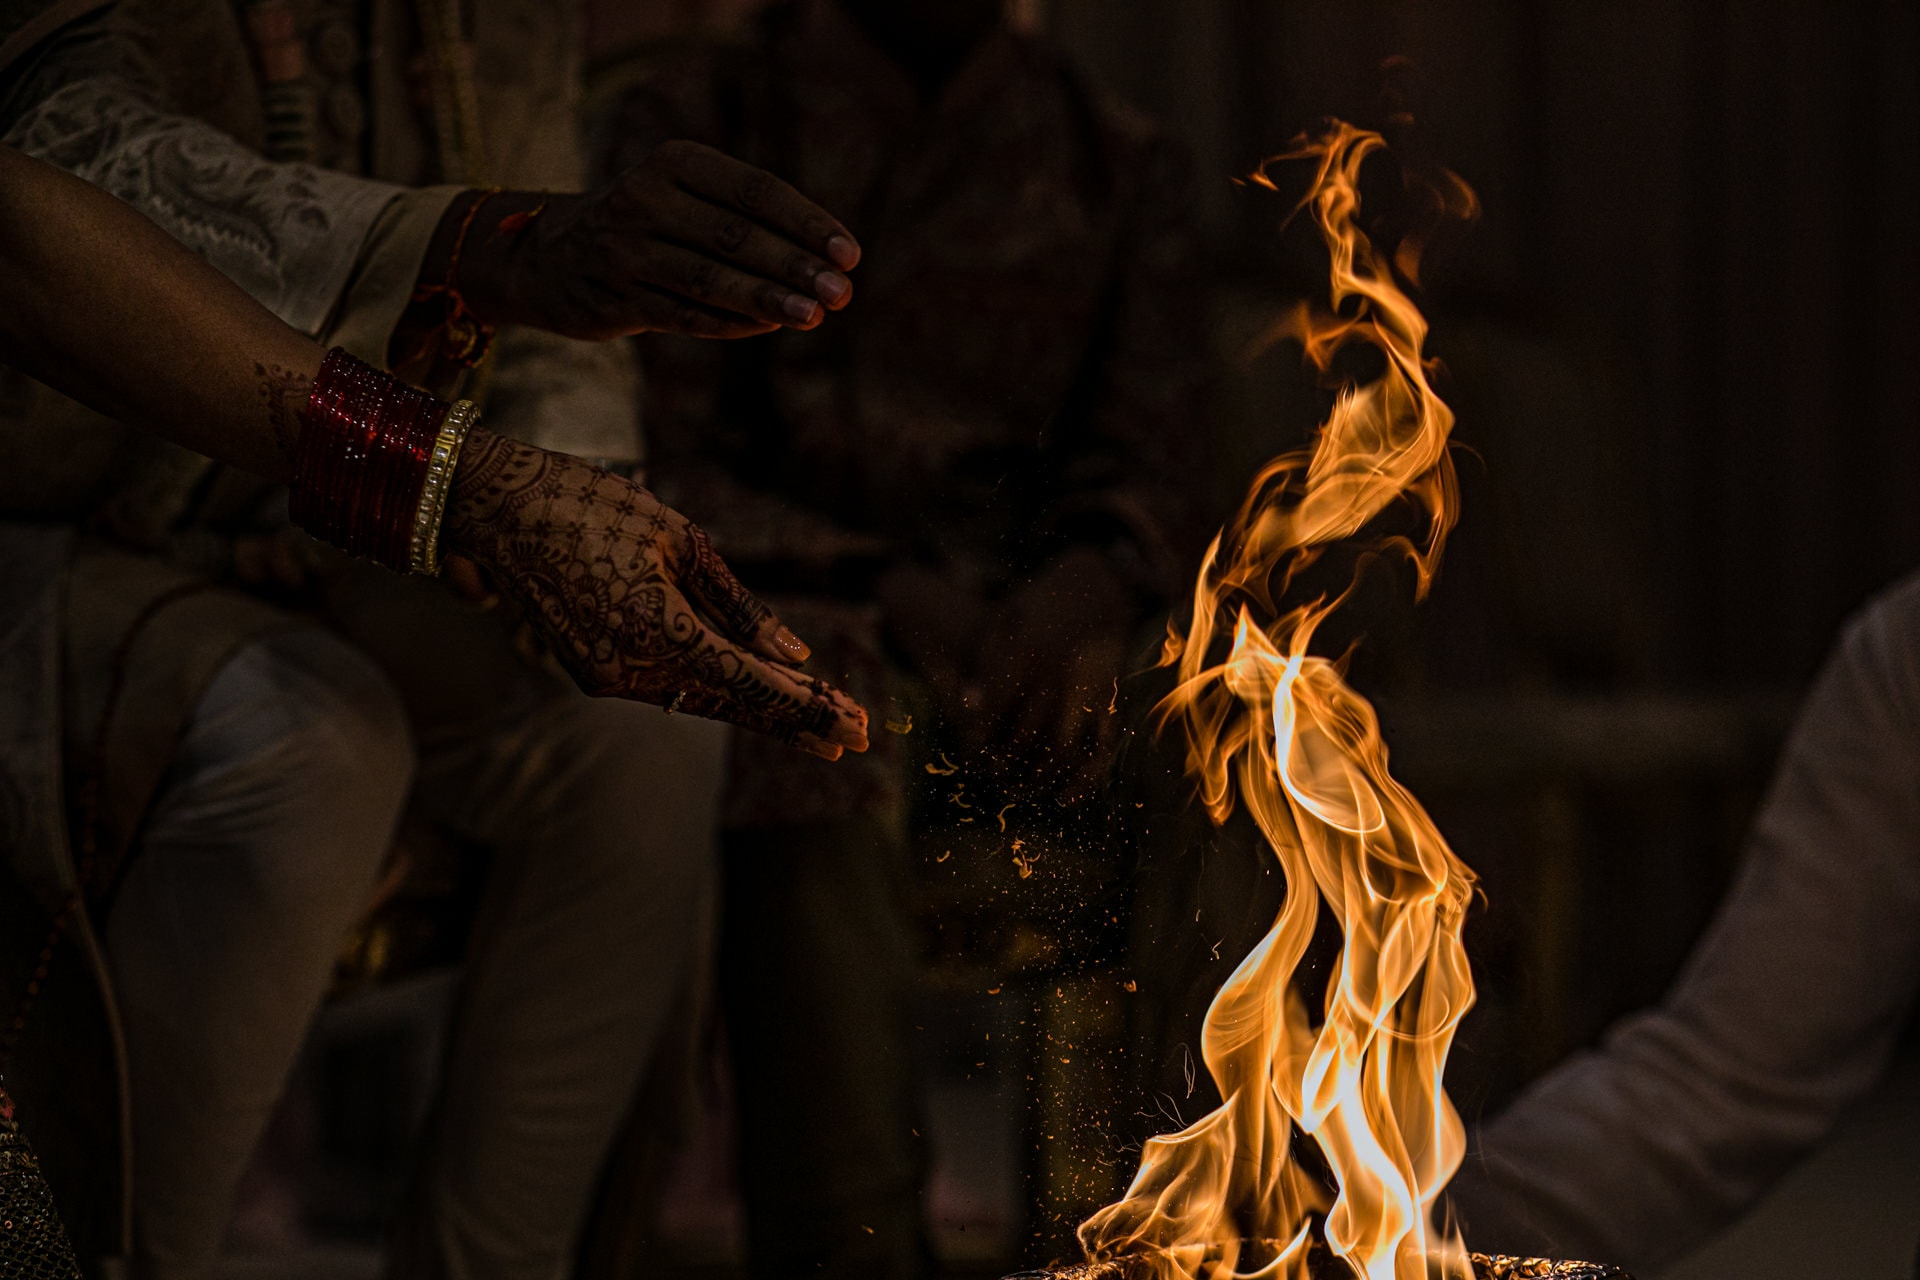 Seeds being thrown into the fire during Asian wedding ceremony